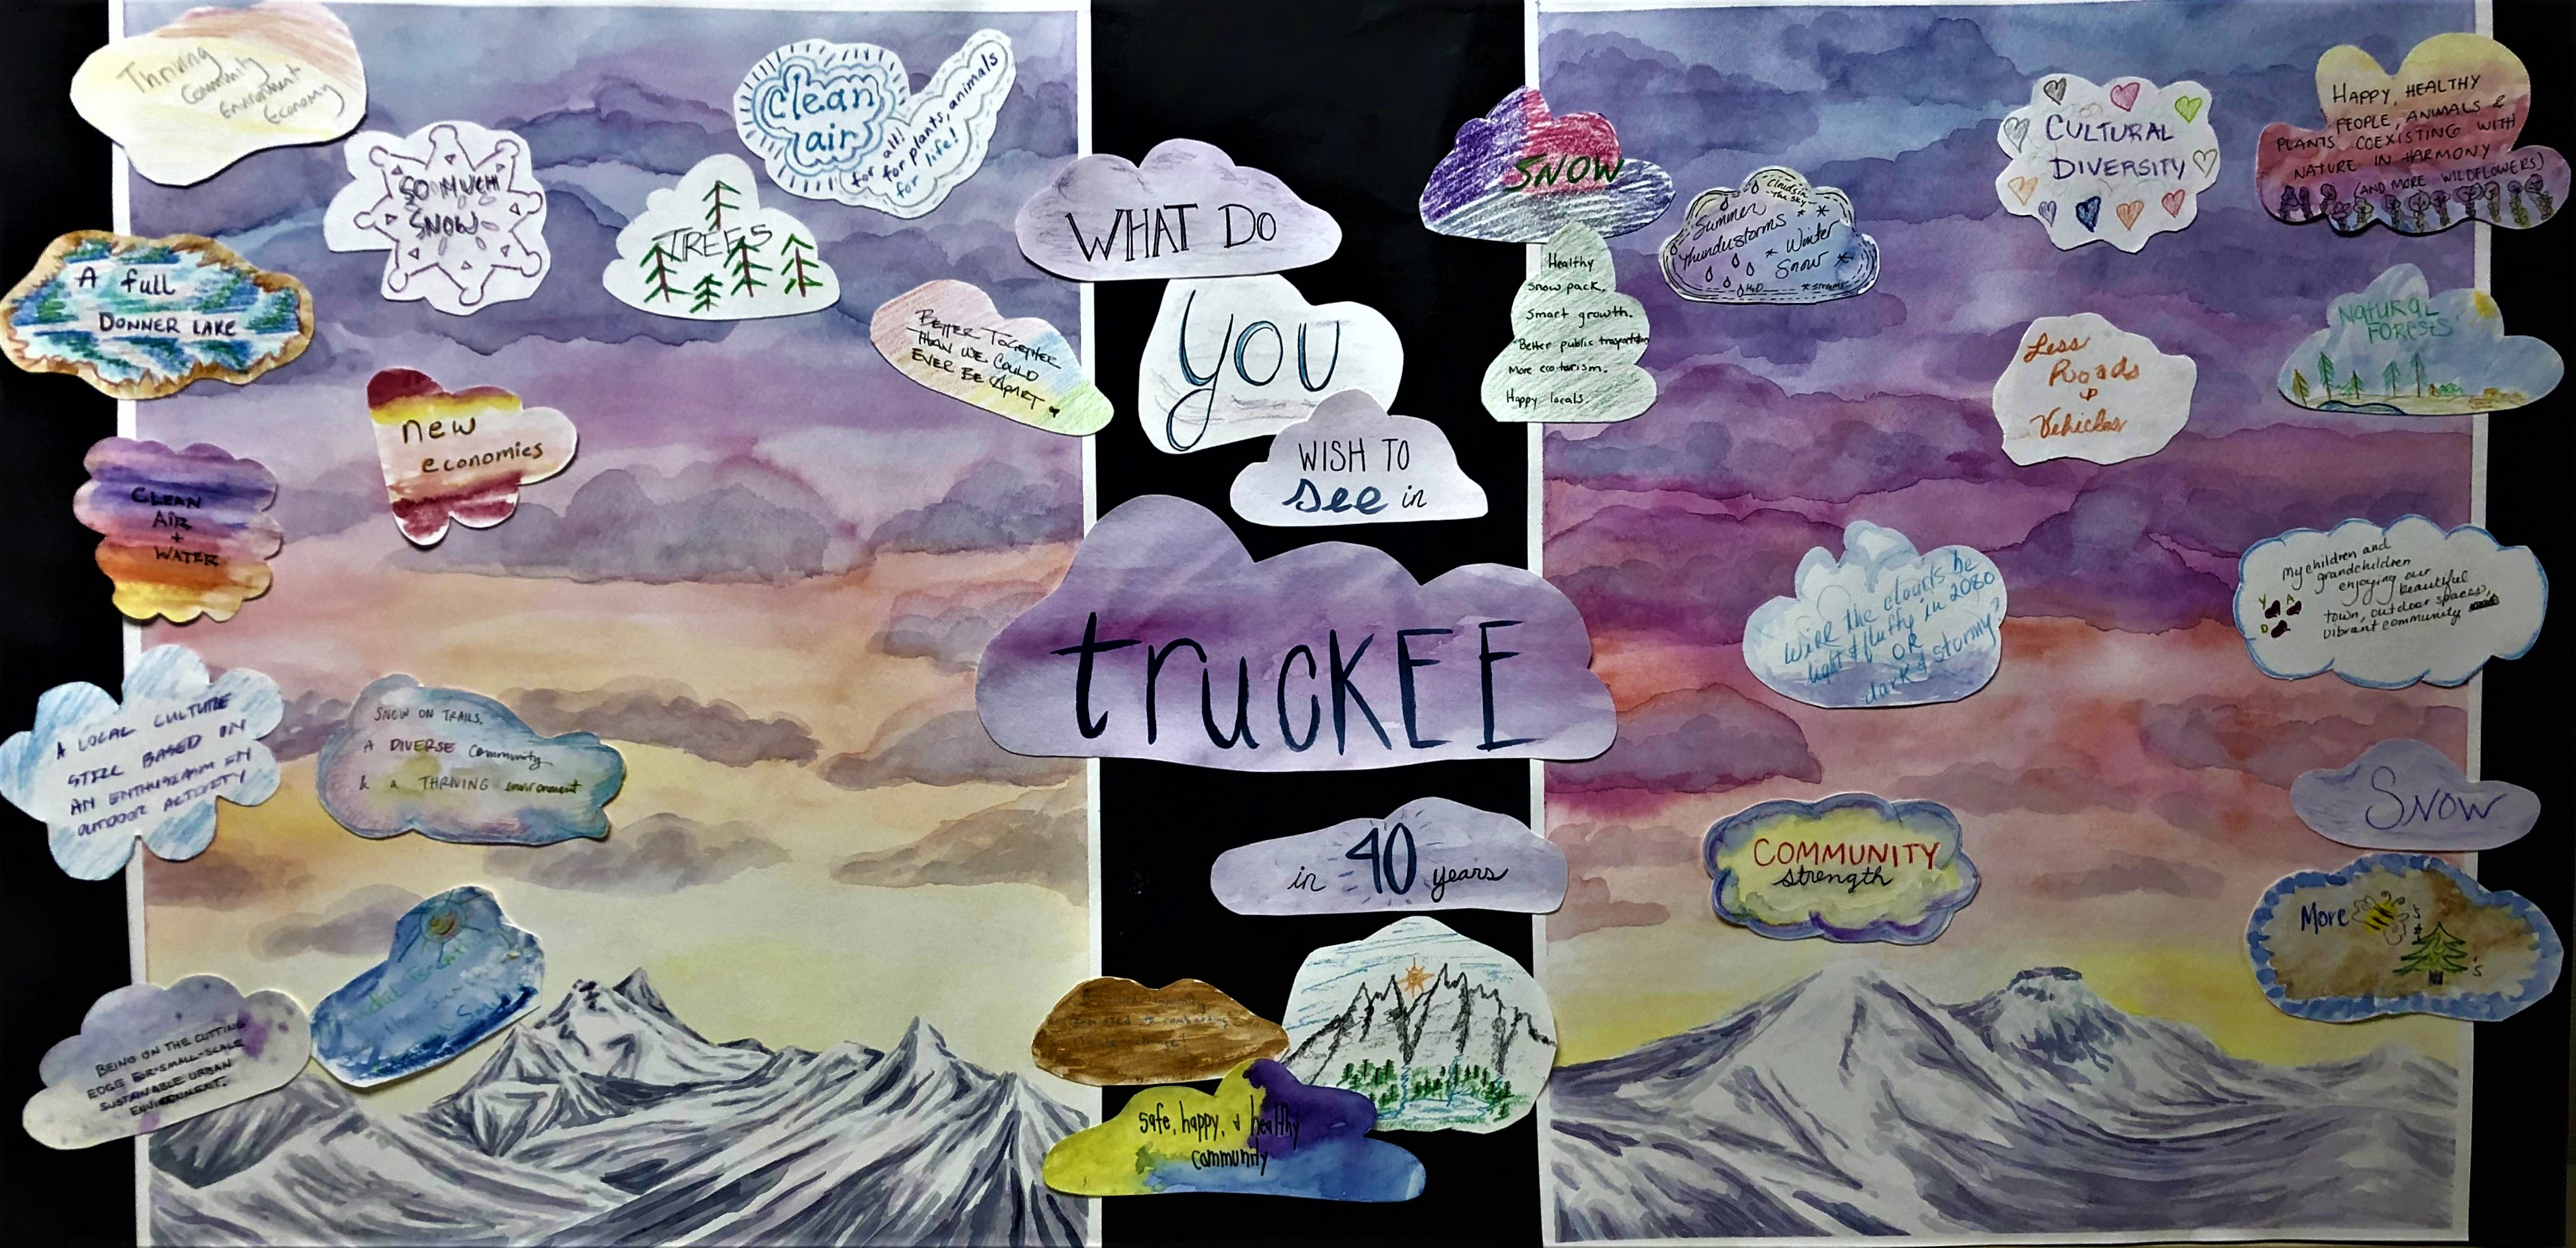 At the July 24 Climate-Ready Truckee Community Workshop, community members shared what they wish to see in Truckee in 40 years. Check out our community's vision!